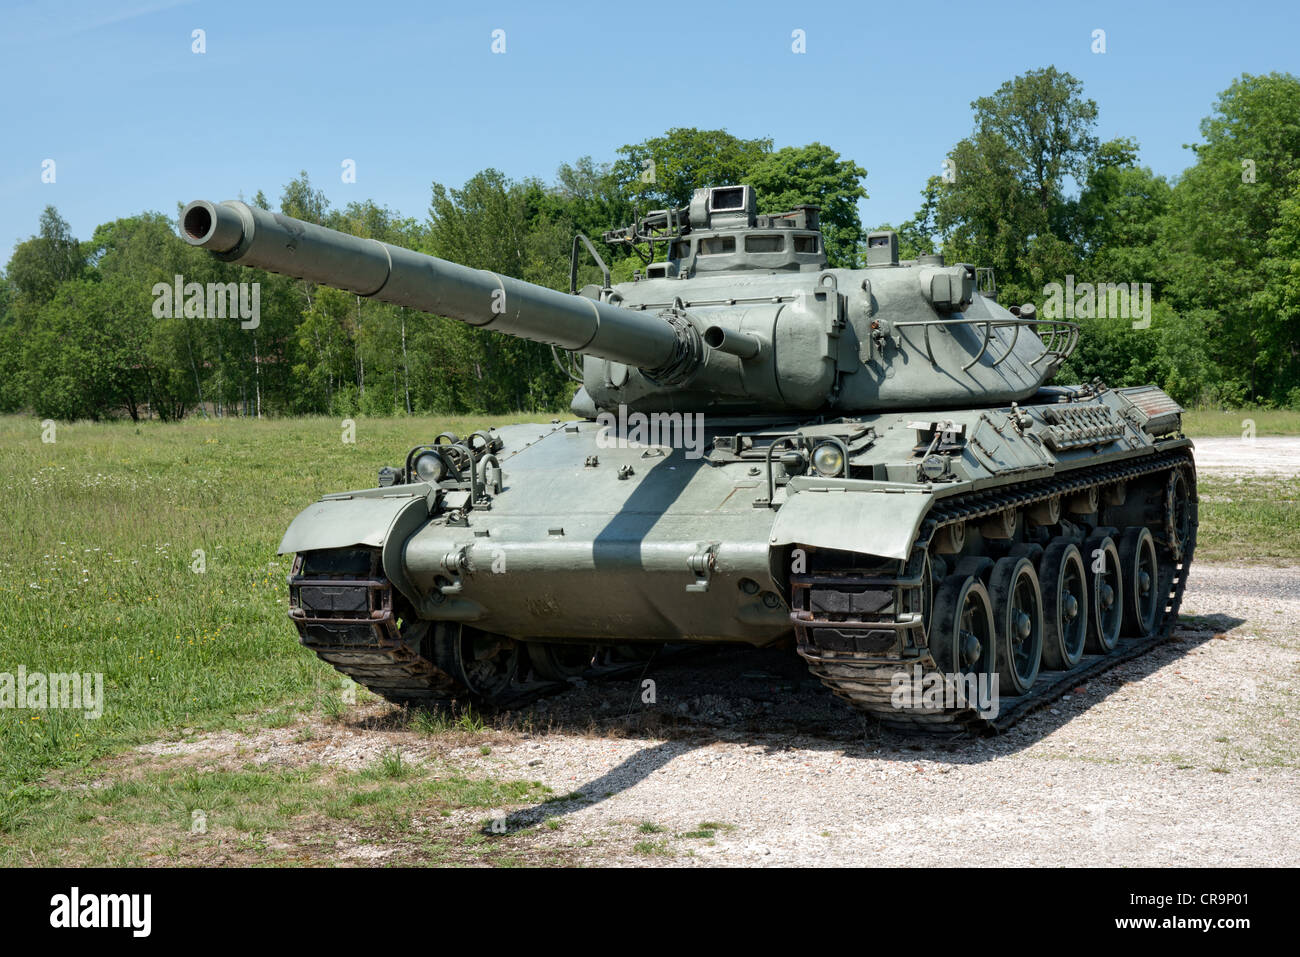 A French AMX-30 Heavy tank - Stock Image